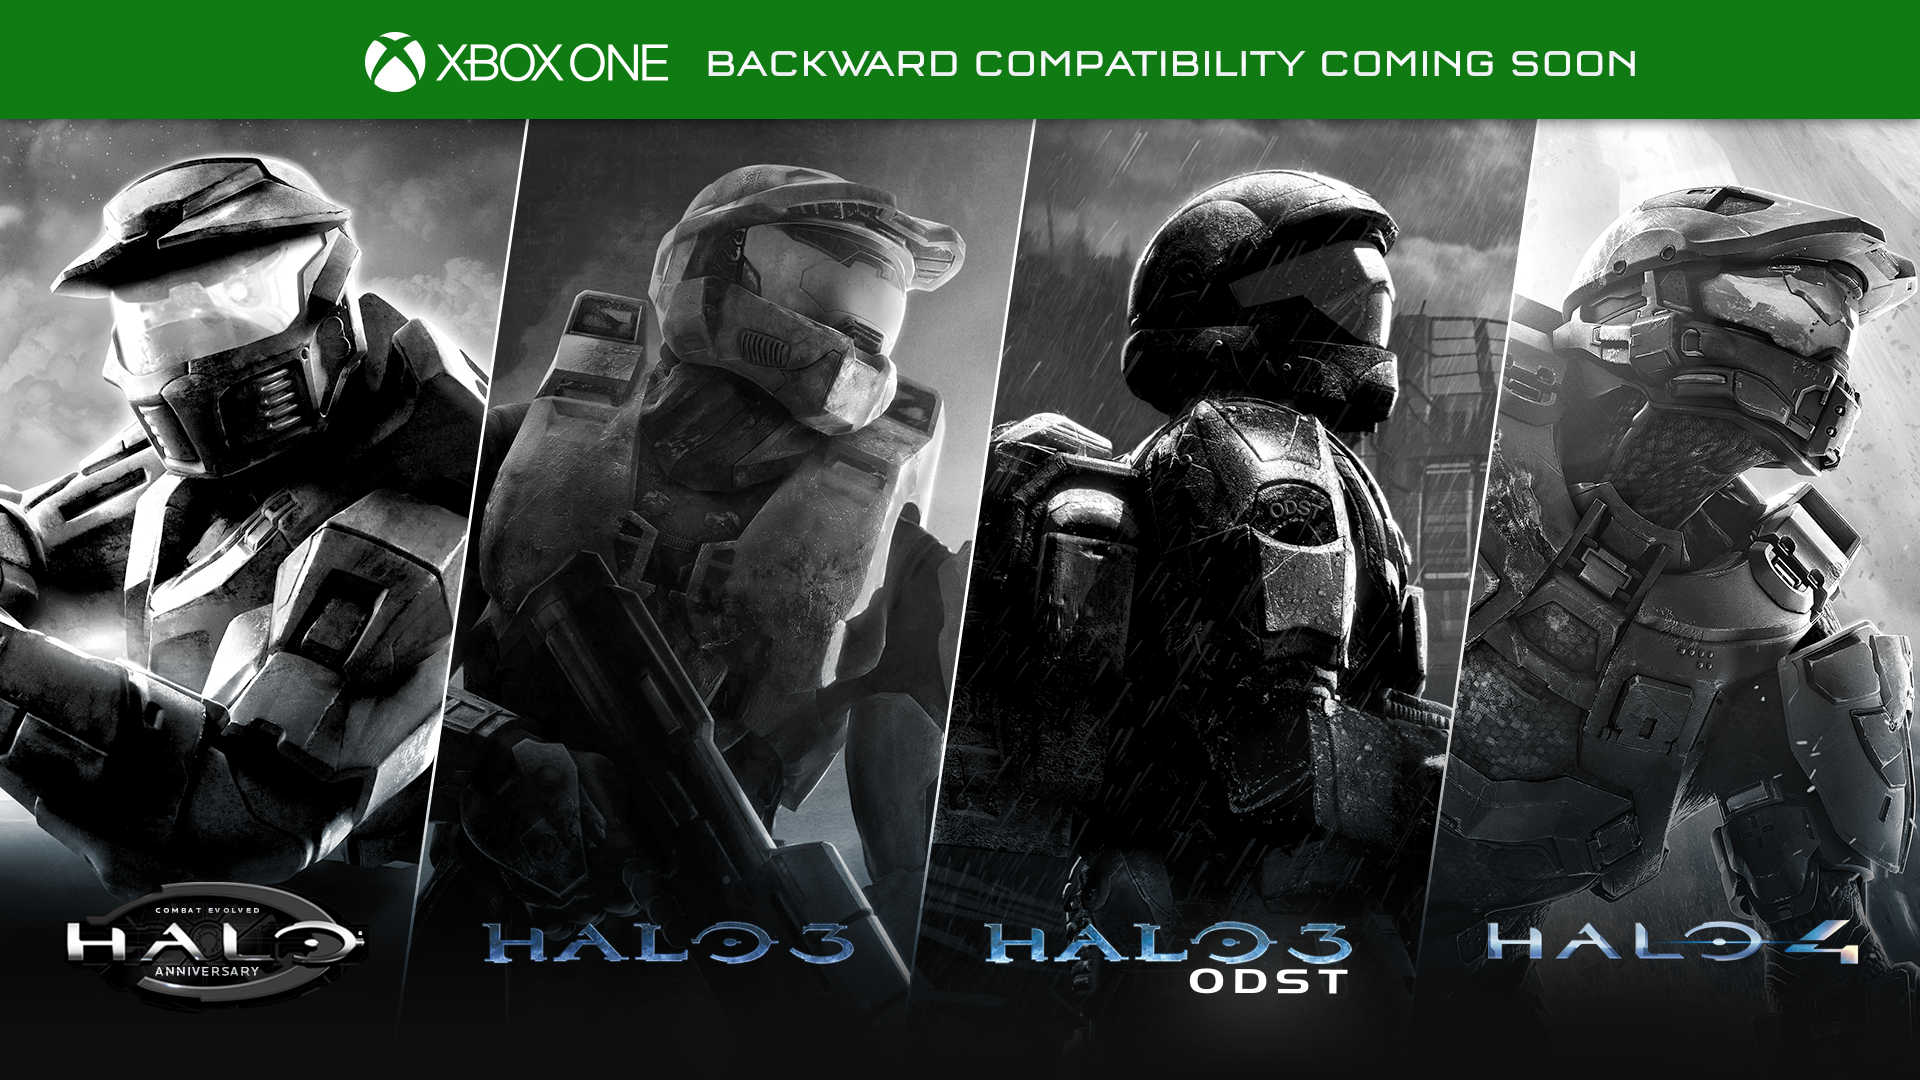 Halo Backwards